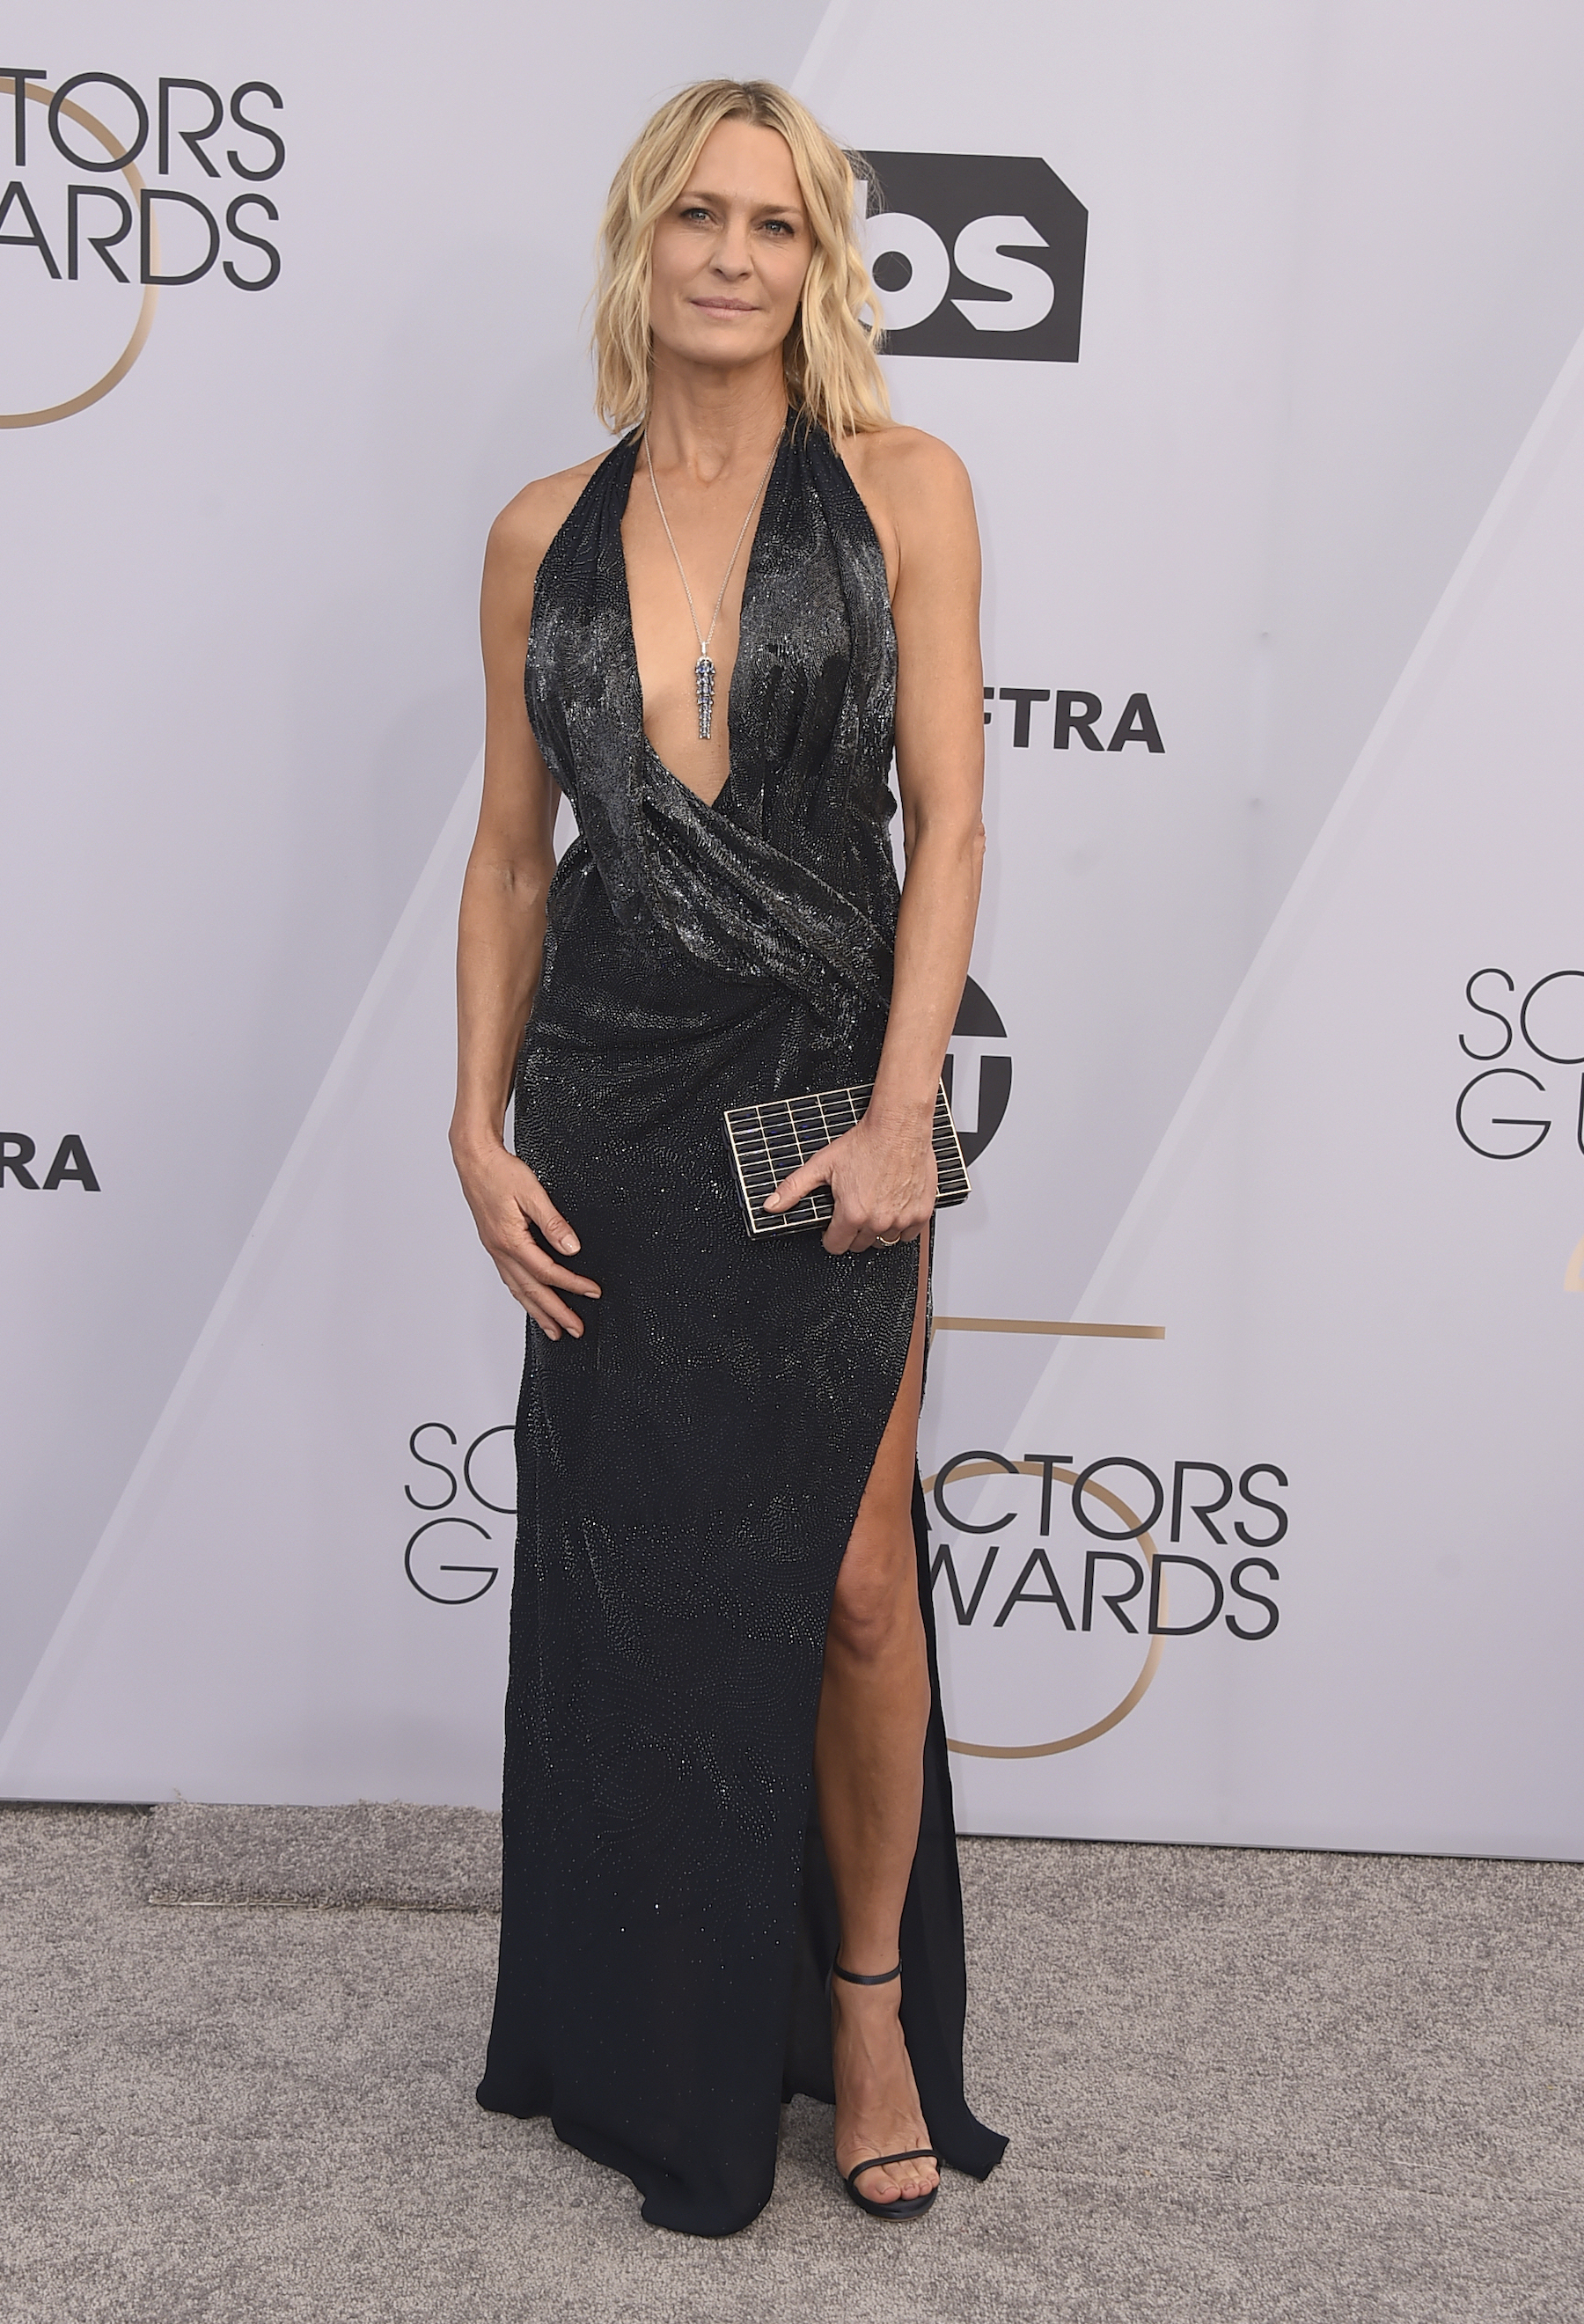 <div class='meta'><div class='origin-logo' data-origin='AP'></div><span class='caption-text' data-credit='Jordan Strauss/Invision/AP'>Robin Wright arrives at the 25th annual Screen Actors Guild Awards at the Shrine Auditorium & Expo Hall on Sunday, Jan. 27, 2019, in Los Angeles.</span></div>